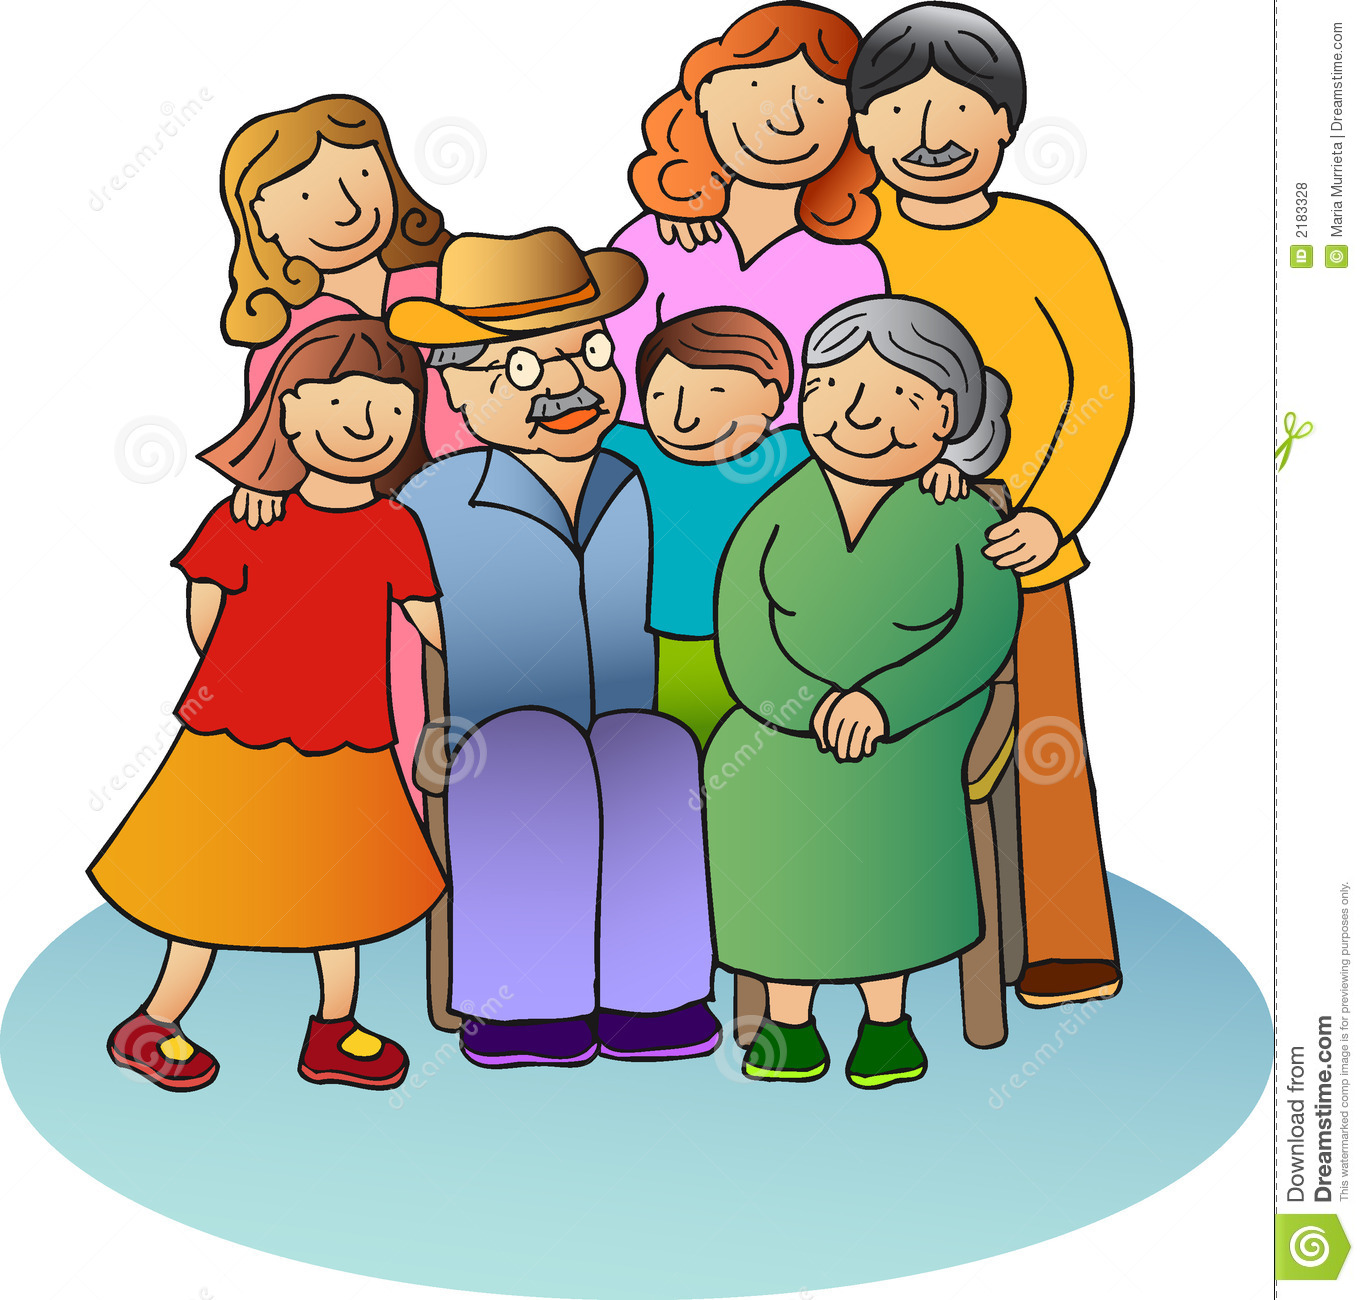 grandparents clip art clipart panda free clipart images rh clipartpanda com grandparent clipart free grandparent clip art free